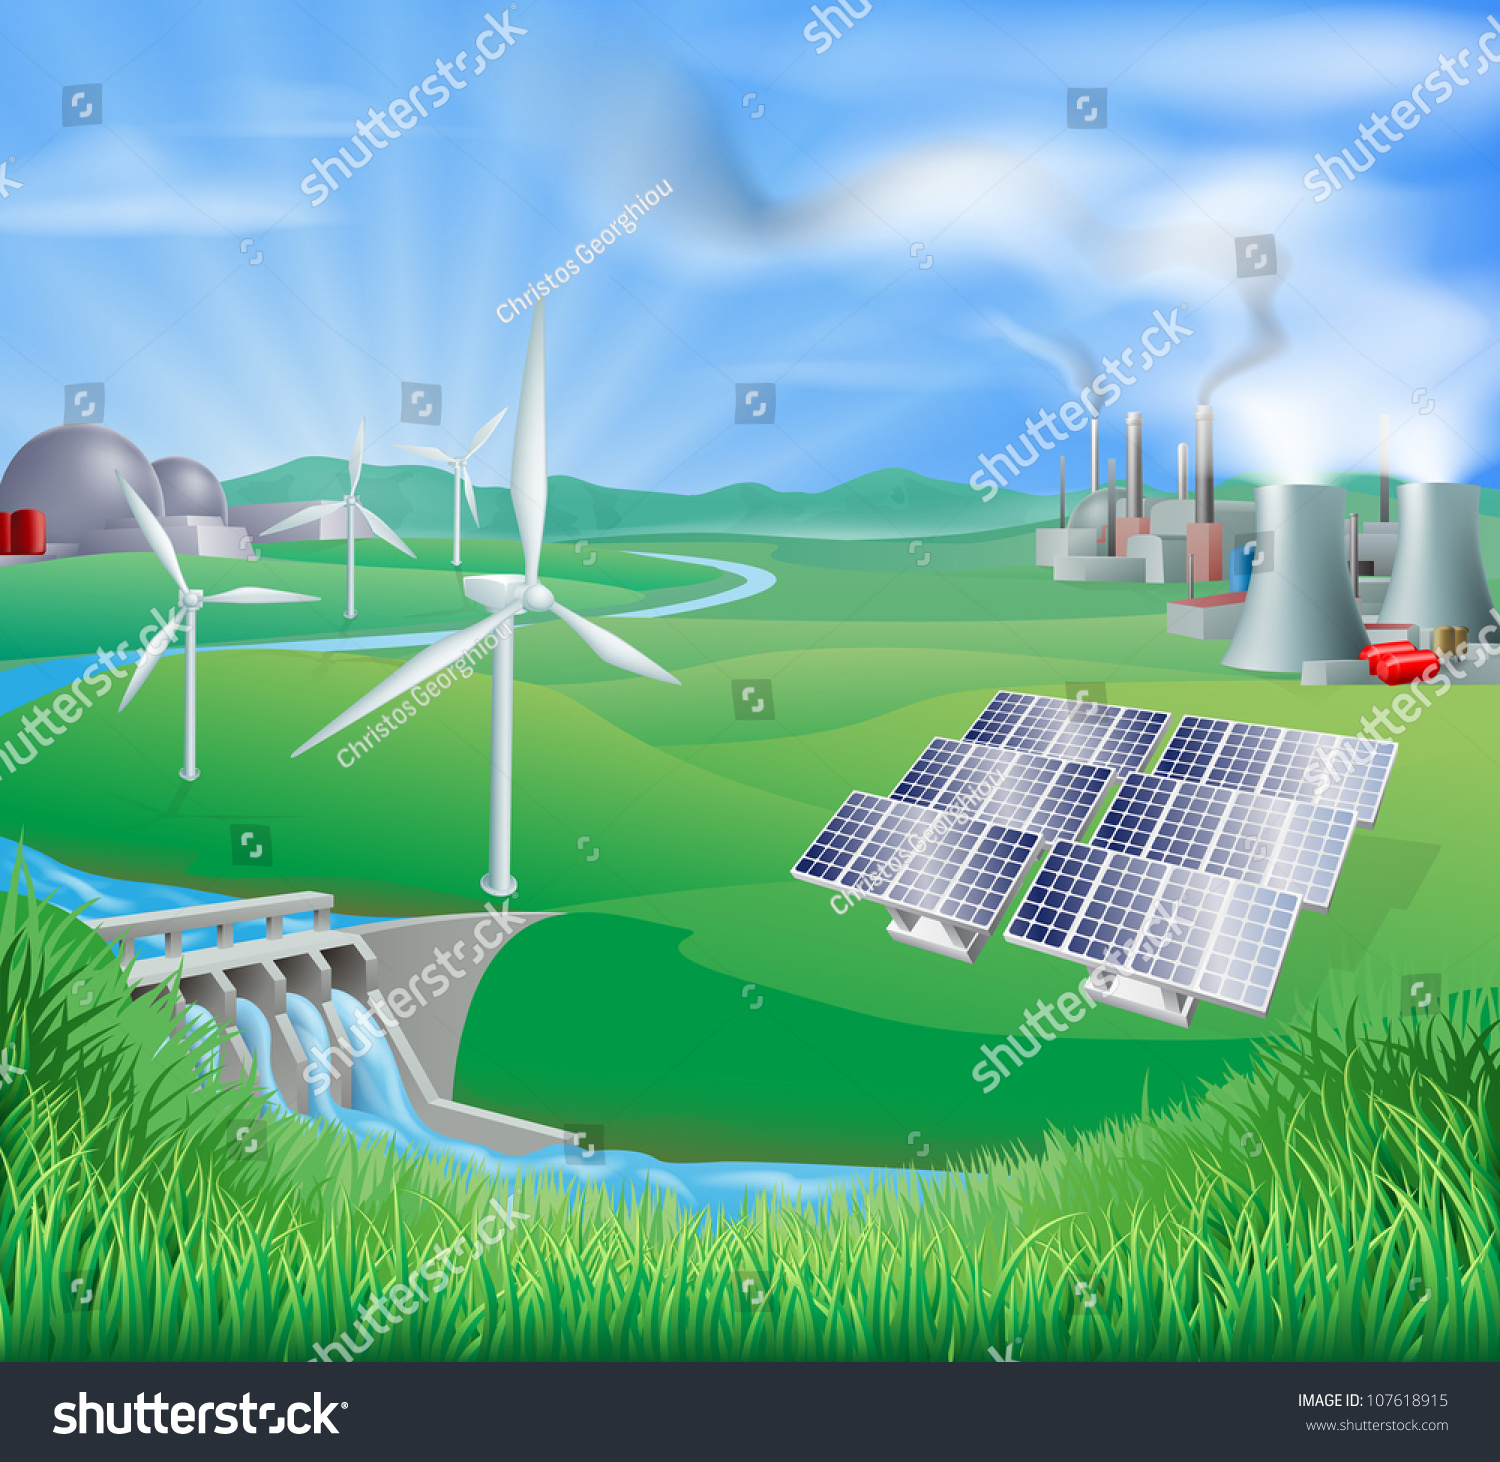 thesis renewable energy Dr mark reesor the thesis by natasha burke entitled: a real options valuation  of renewable energy projects is accepted in partial fulfillment of the.